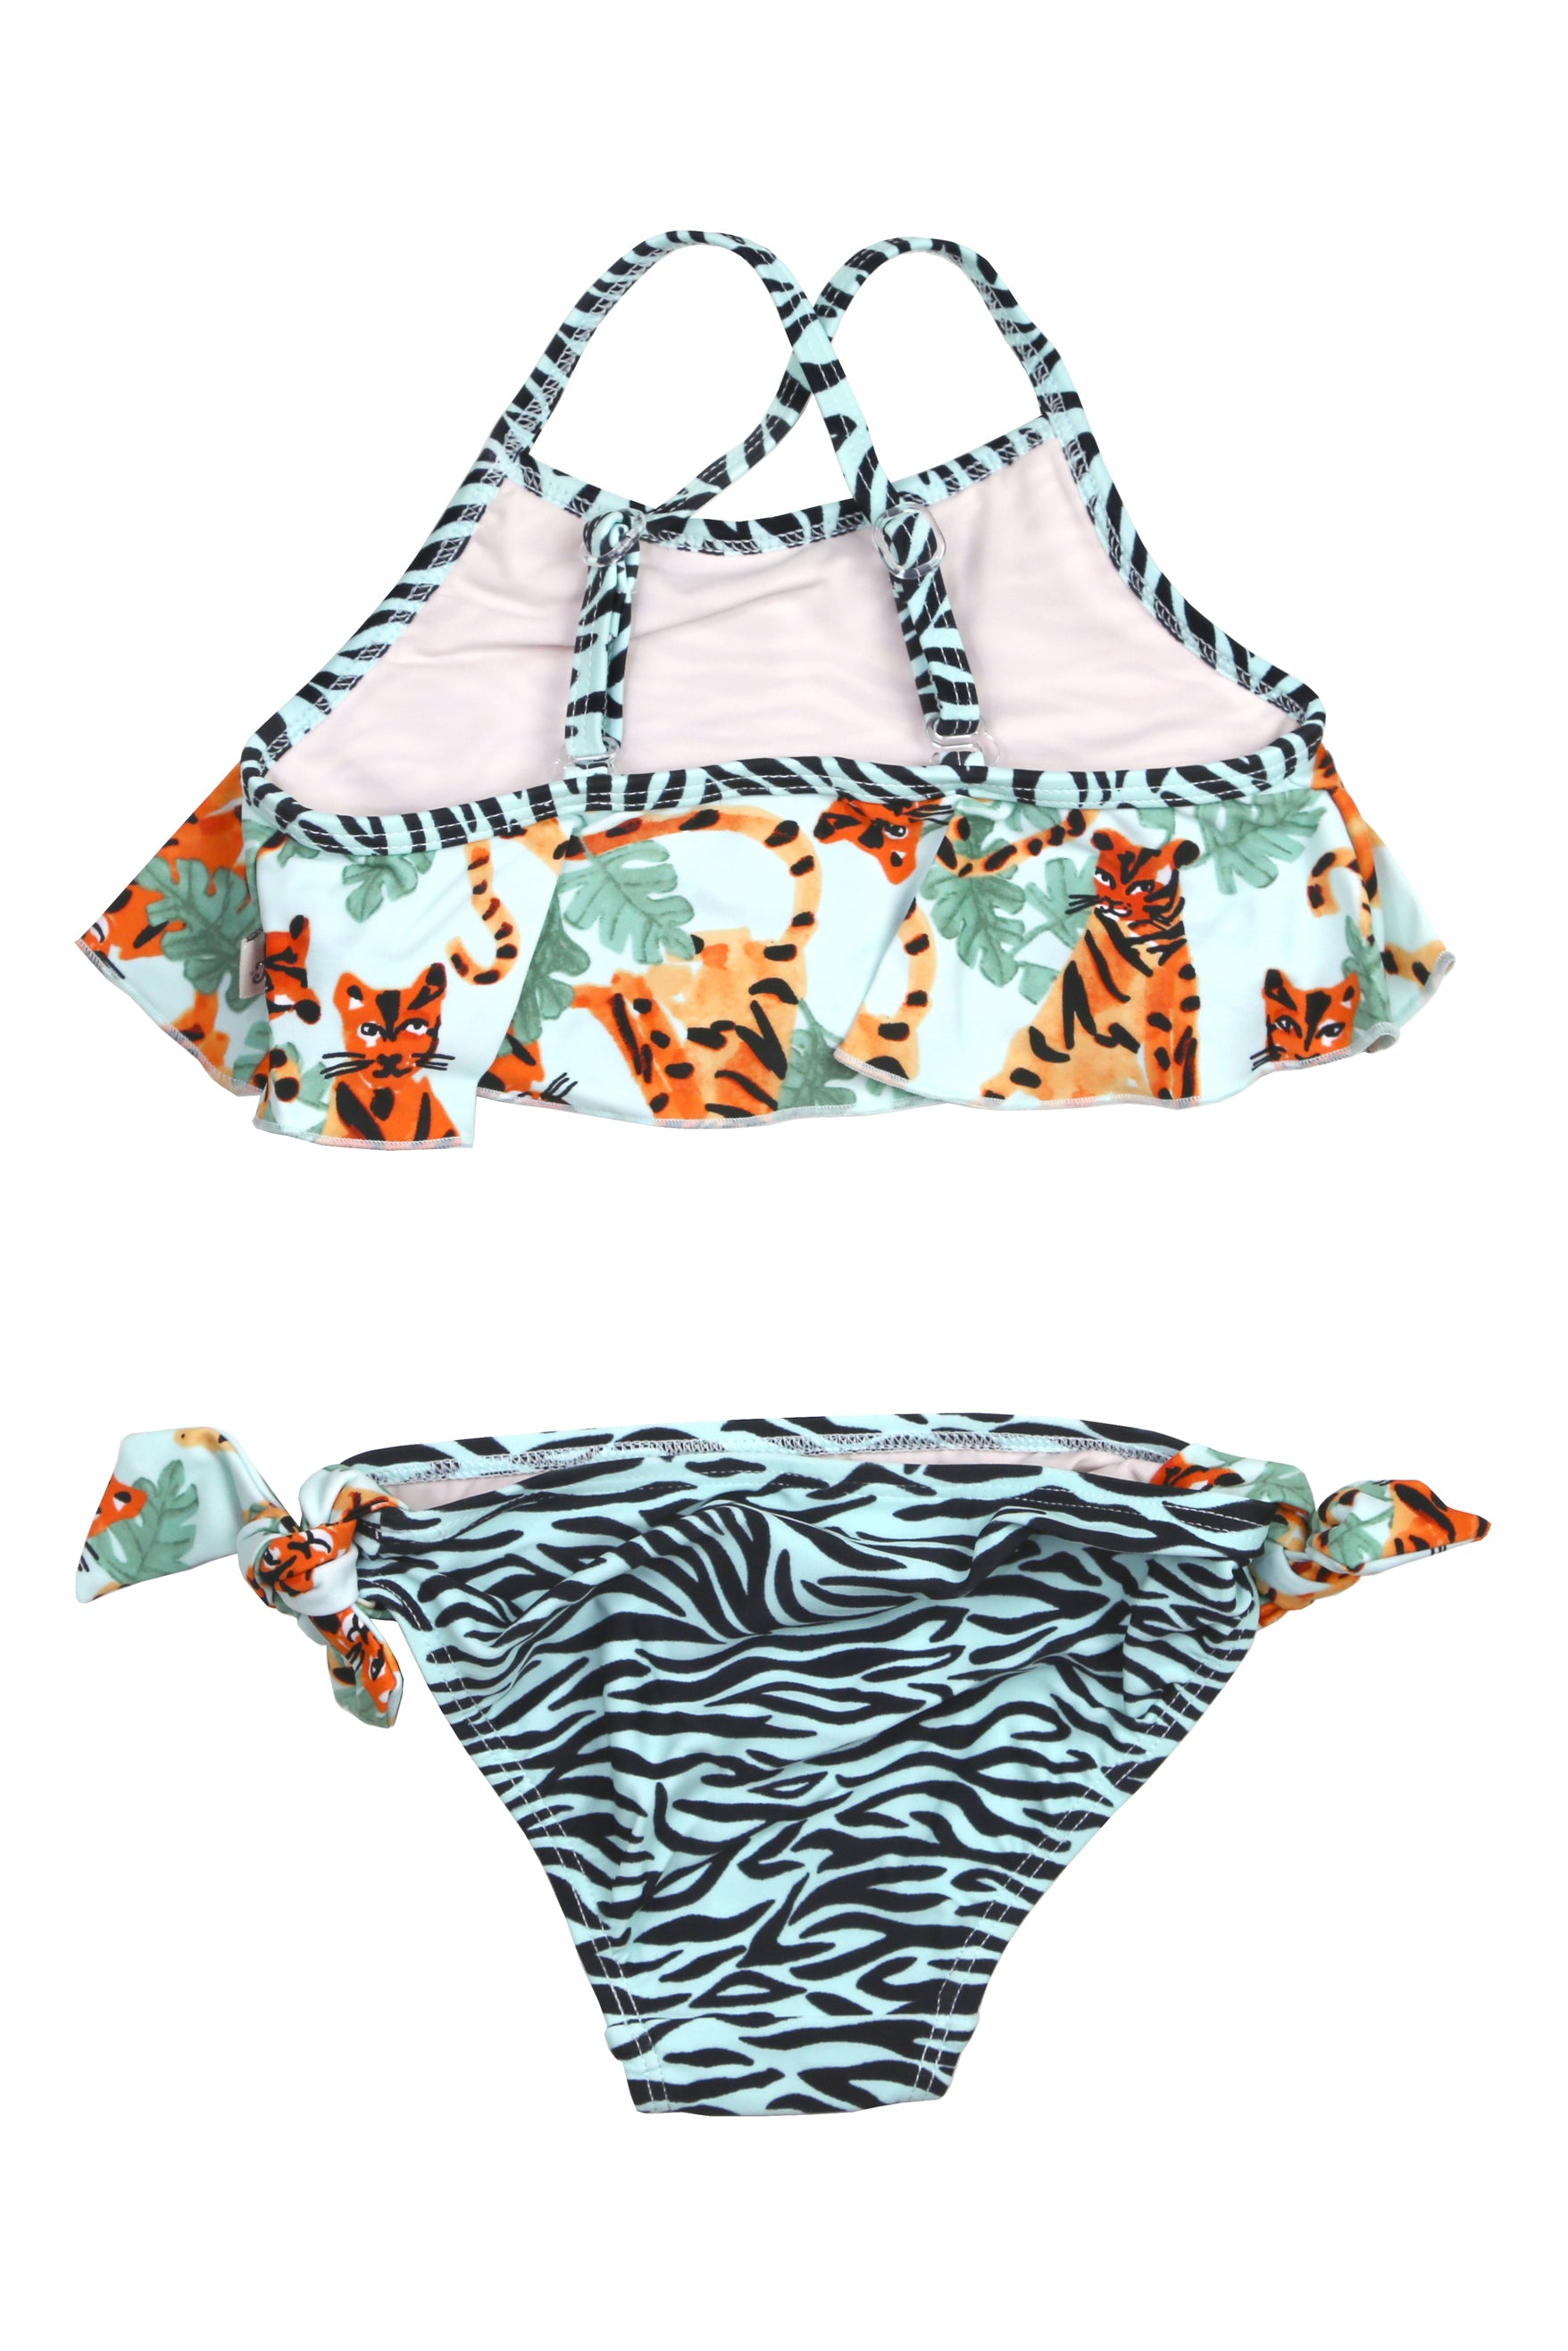 Jungle Tiger Flounce Bikini Set, mint